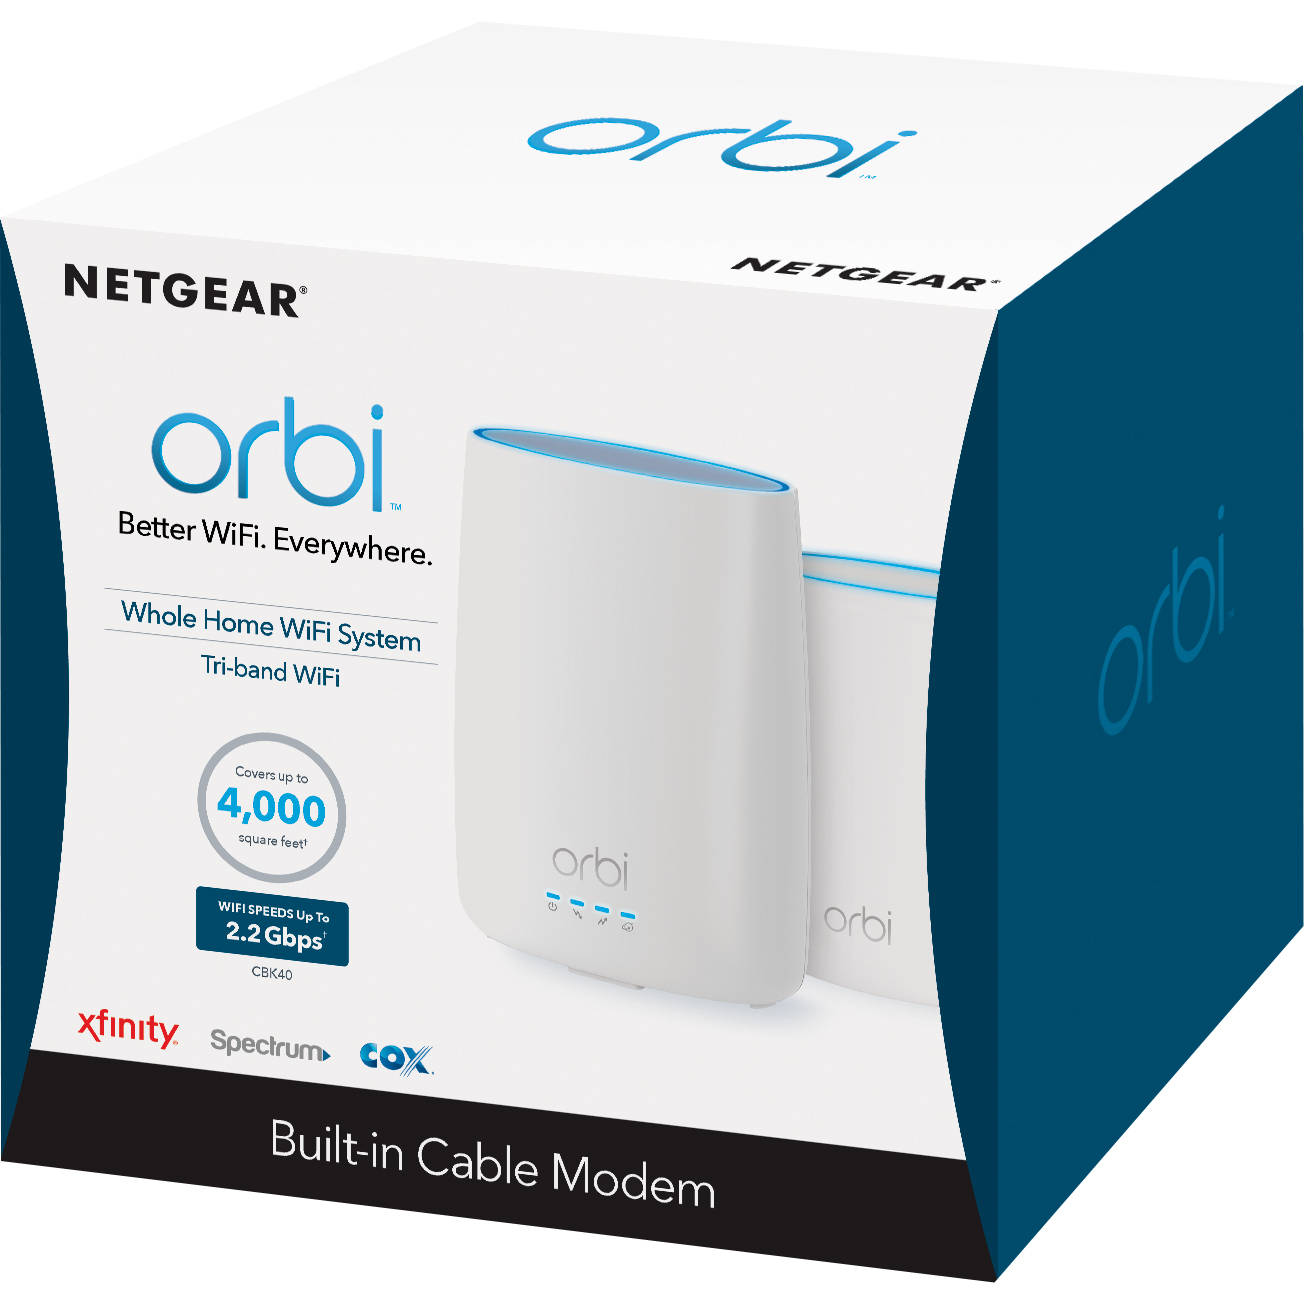 NETGEAR CBK40 Orbi Mesh WiFi System with Built in Cable Modem AC3000, DOCSIS 3.0 | Up to 5,000 Square Feet; Certified for XFINITY from Comcast, Spectrum, Cox, and more (CBK40)